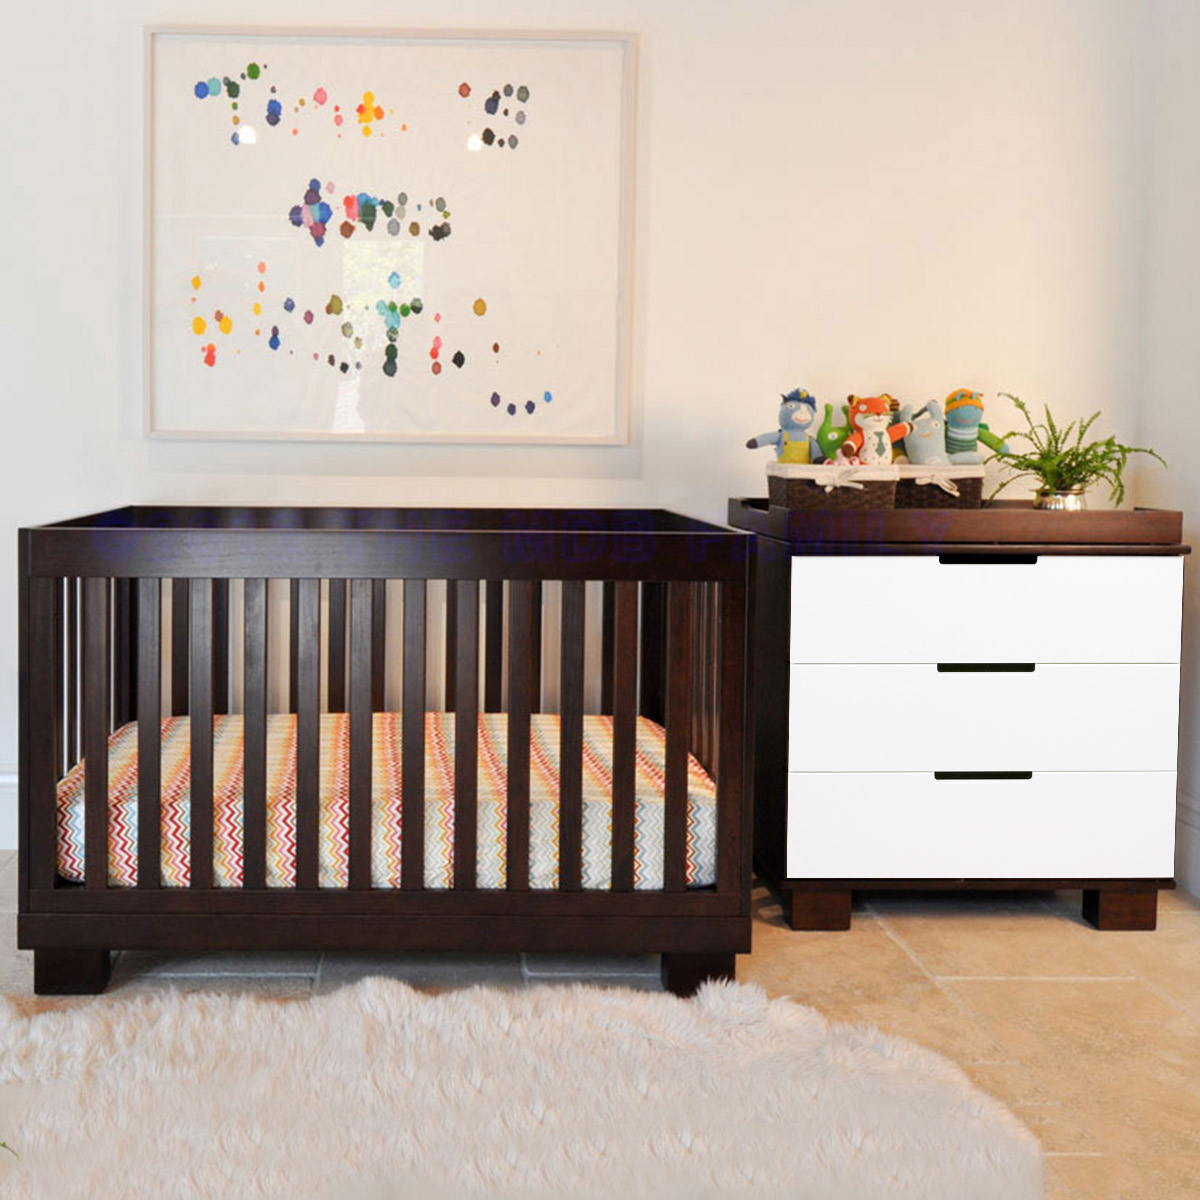 Espresso crib for sale - Modern Babyletto 2 Piece Nursery Set Modo Espresso 3 In 1 Crib Moda Two Tone 3 Drawer Dresser Changer Set Free Shipping